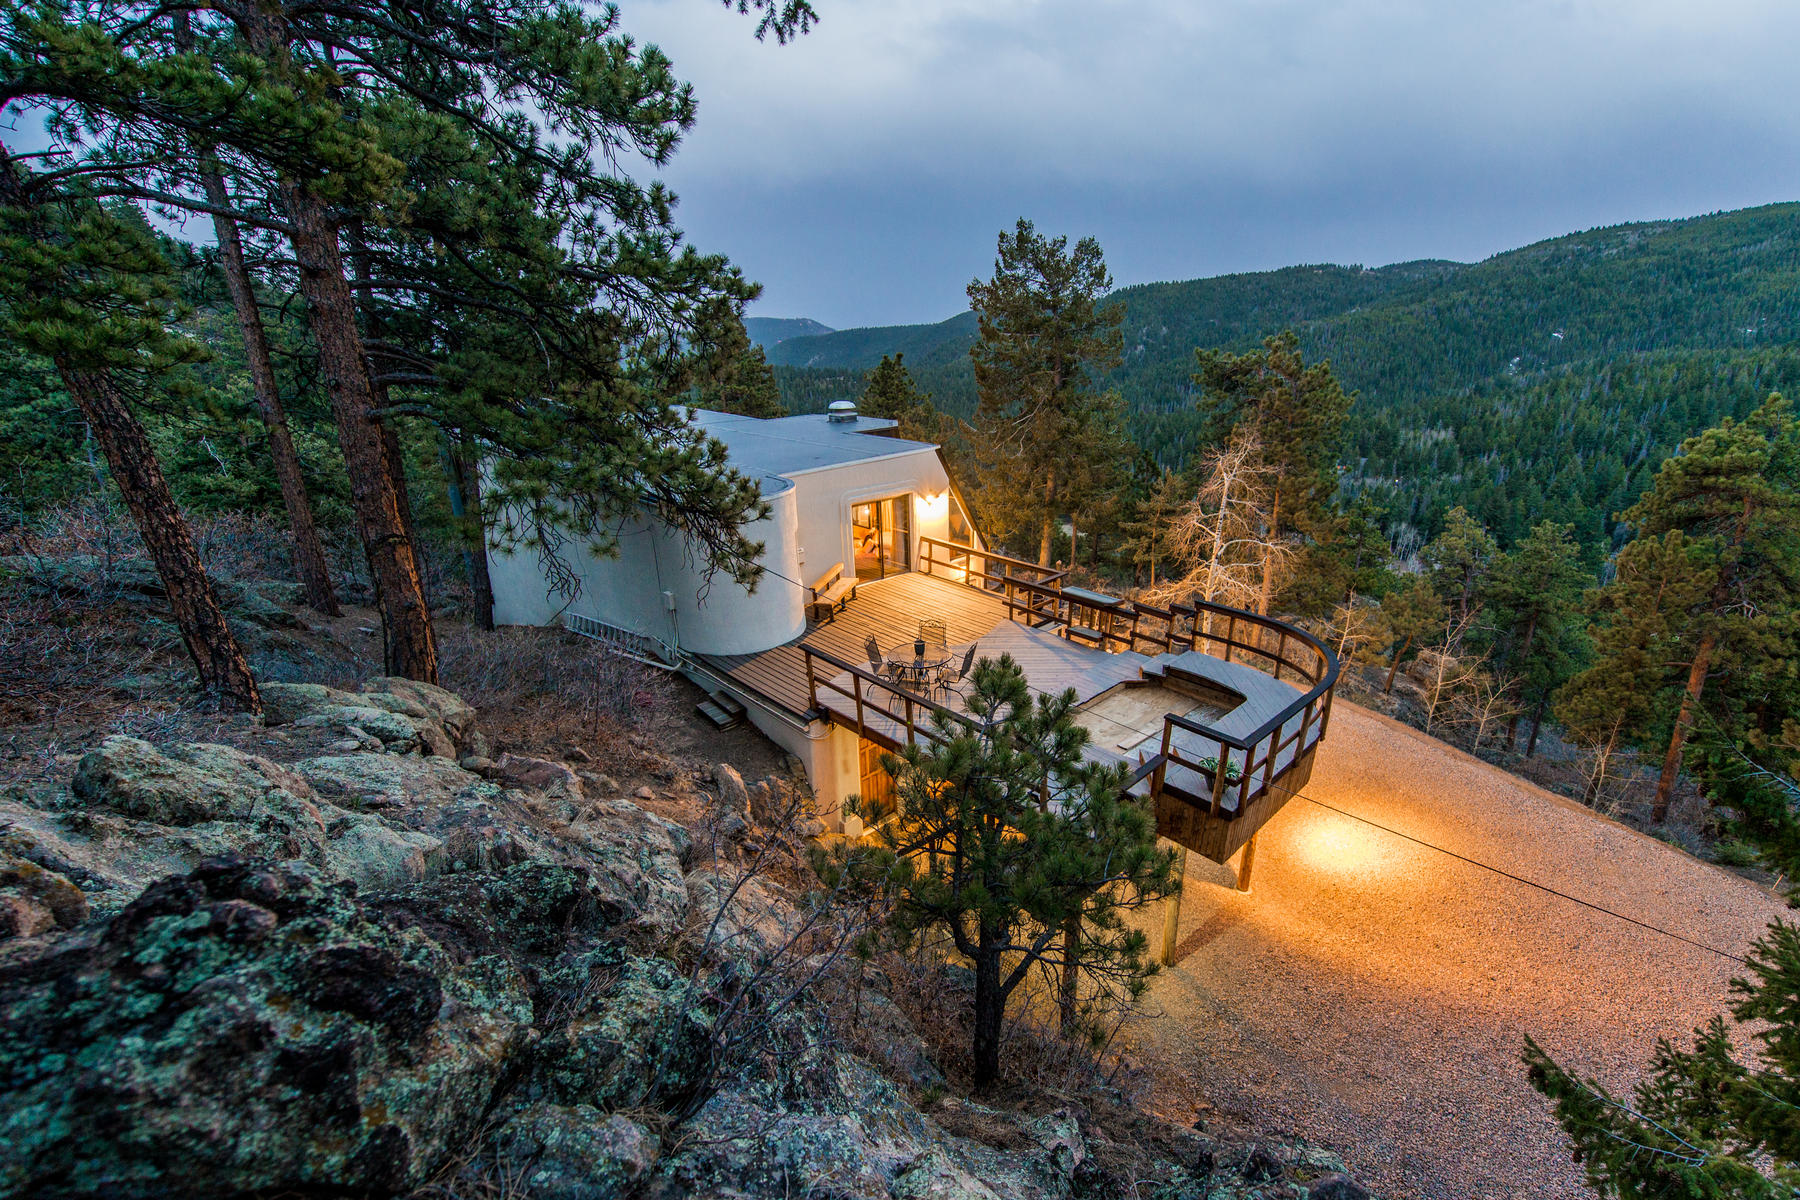 Single Family Home for Active at Unique Artisan Mountain Top Home with 17 Acres 20173 Goins Drive Morrison, Colorado 80465 United States